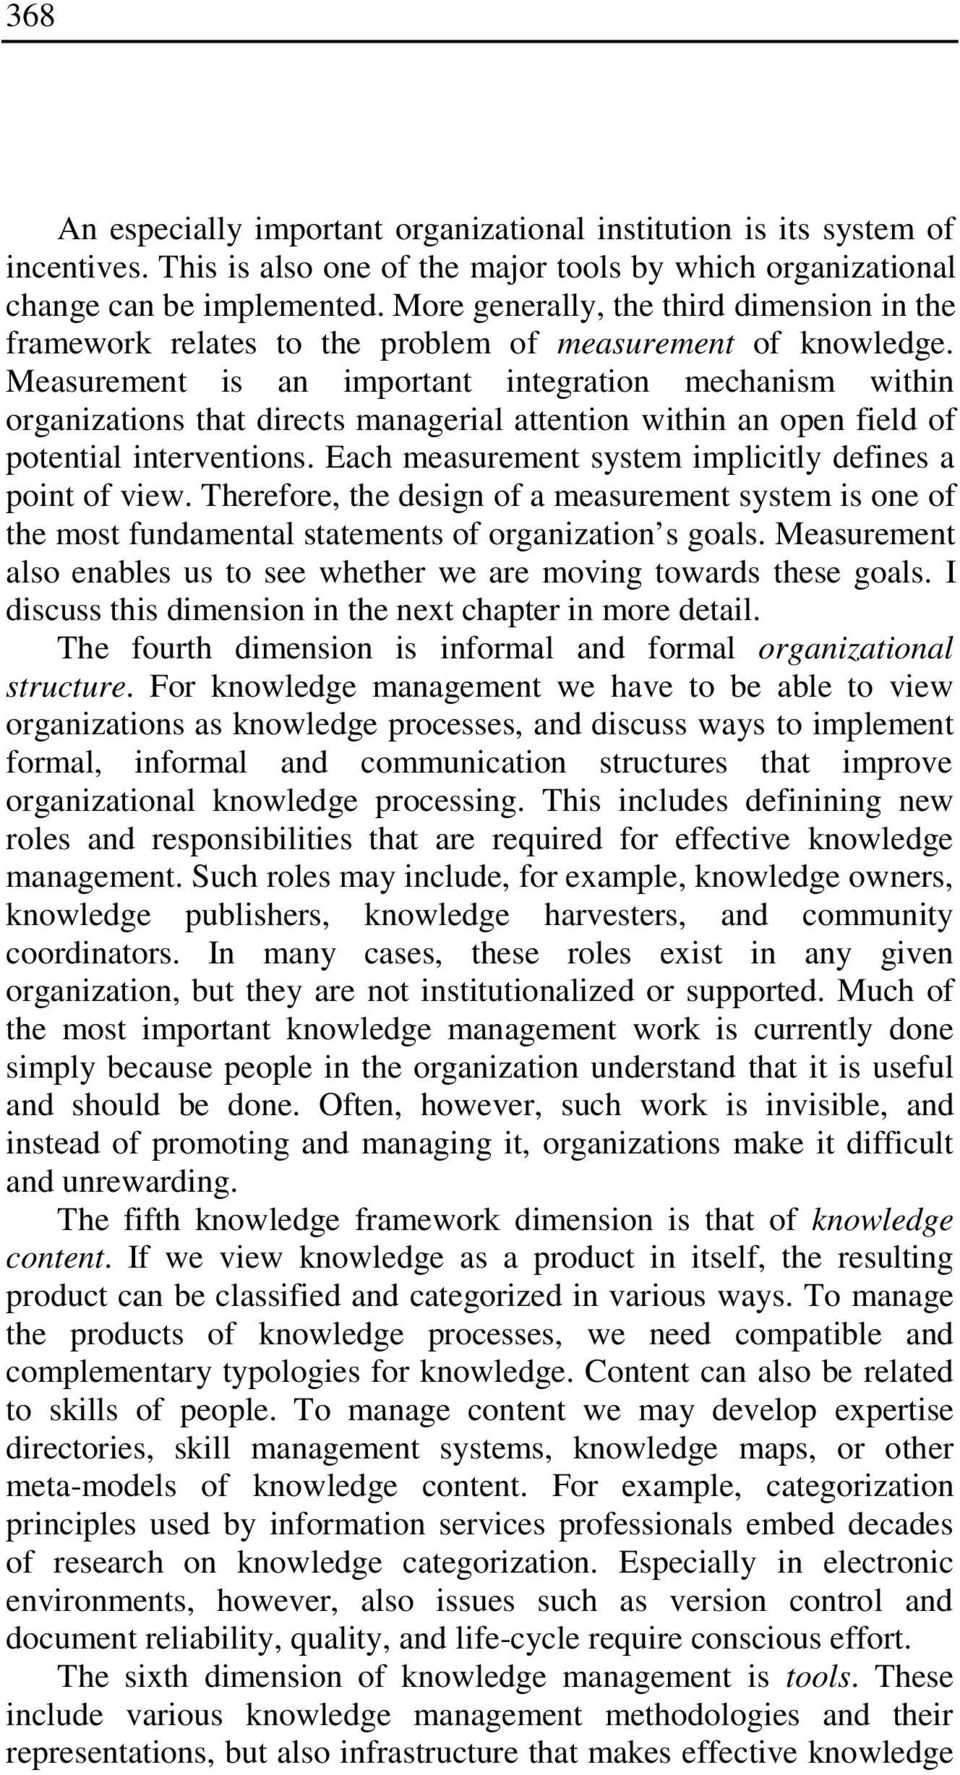 Measurement is an important integration mechanism within organizations that directs managerial attention within an open field of potential interventions.